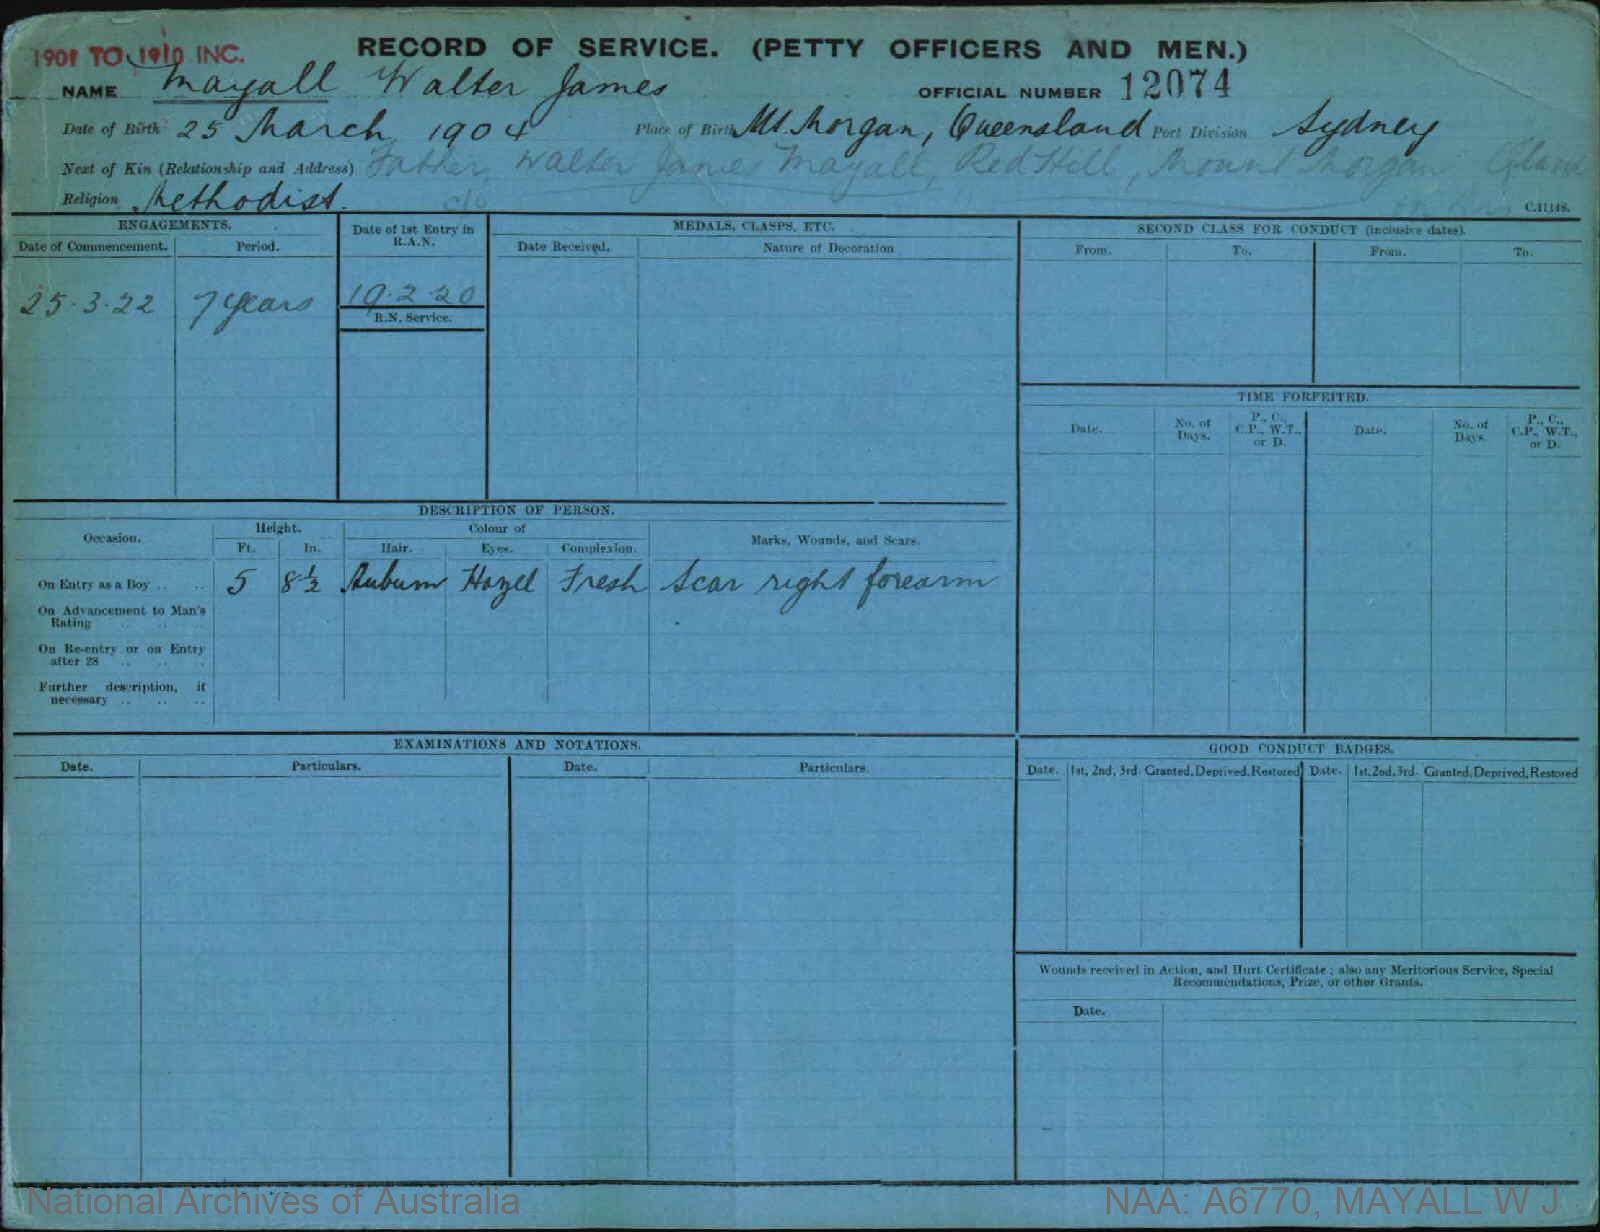 MAYALL WALTER JAMES : Service Number - 12074 : Date of birth - 25 Mar 1904 : Place of birth - MT MORGAN QLD : Place of enlistment - SYDNEY : Next of Kin - MAYALL WALTER